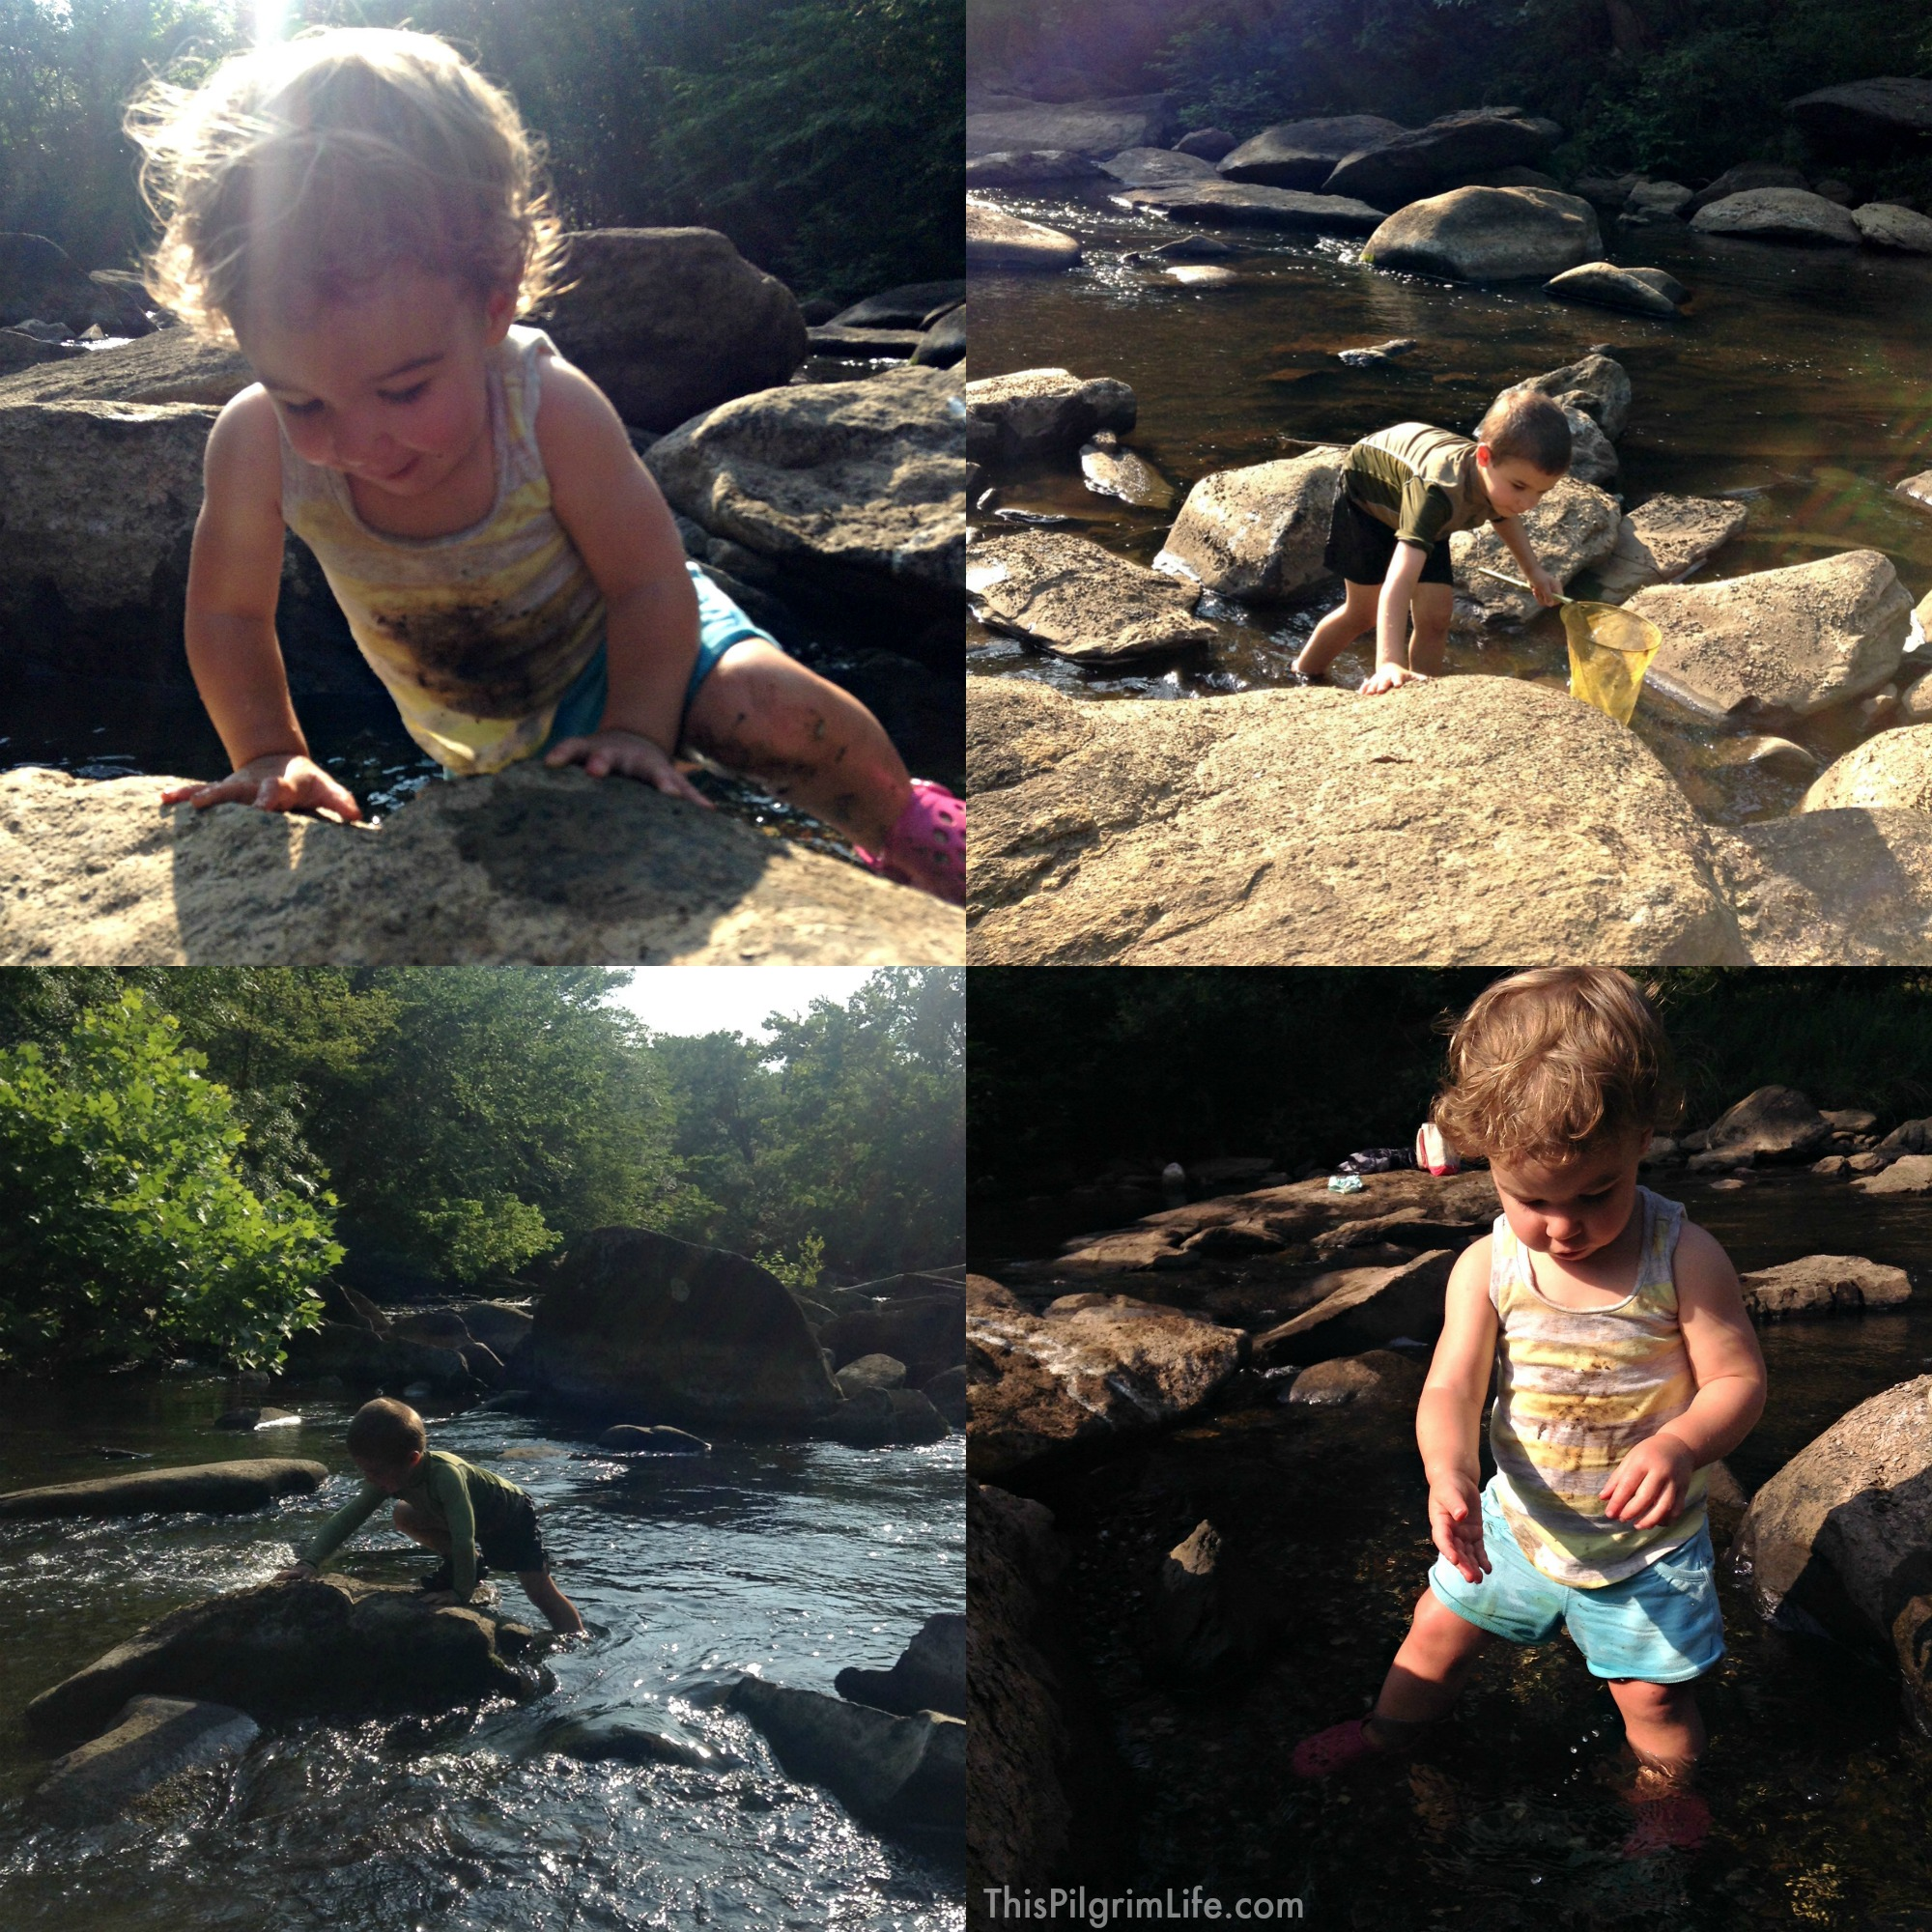 3 Reasons to Explore Wild Water with Kids & Tips to Keep Everyone Safe and Having Fun